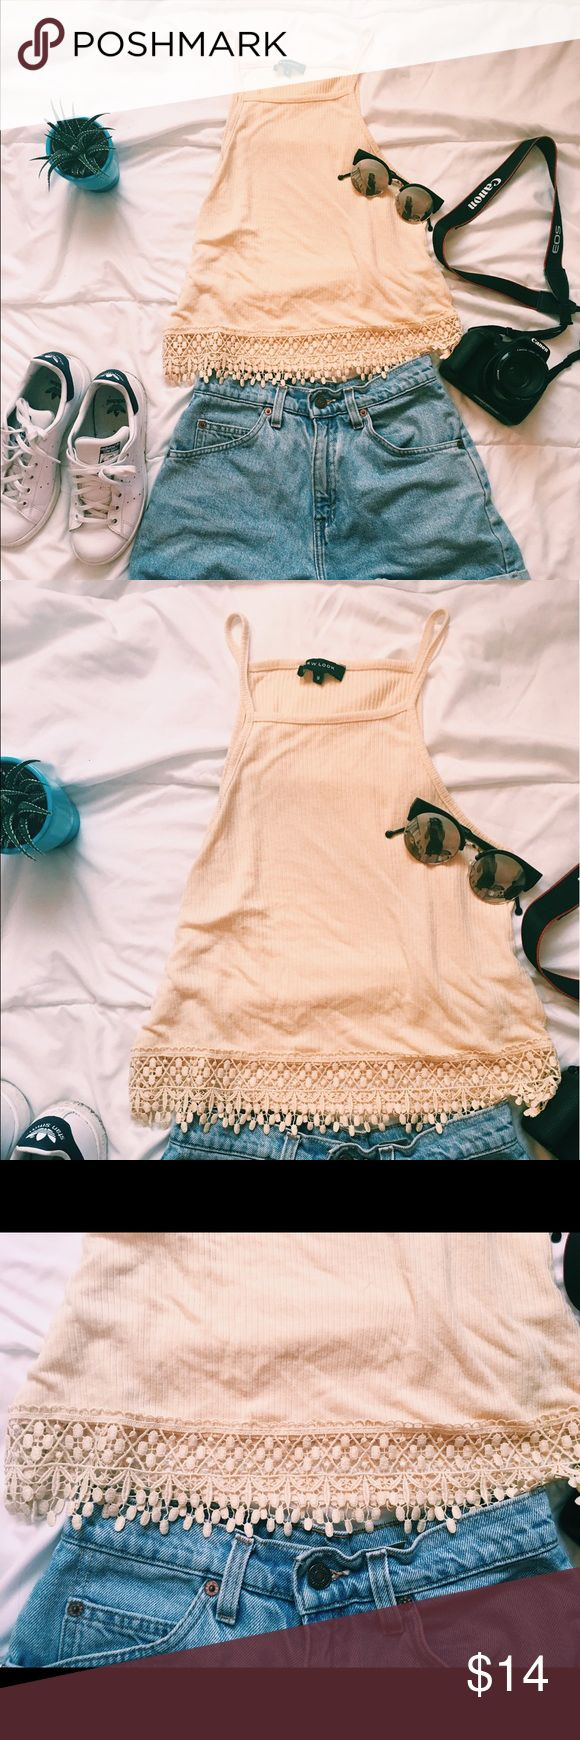 ✨ New Look Yellow Crop Top ✨ Bought in France! Worn only once, super stylish can't fit a small or medium, shorts for sale on another post 💕 New Look Tops Crop Tops